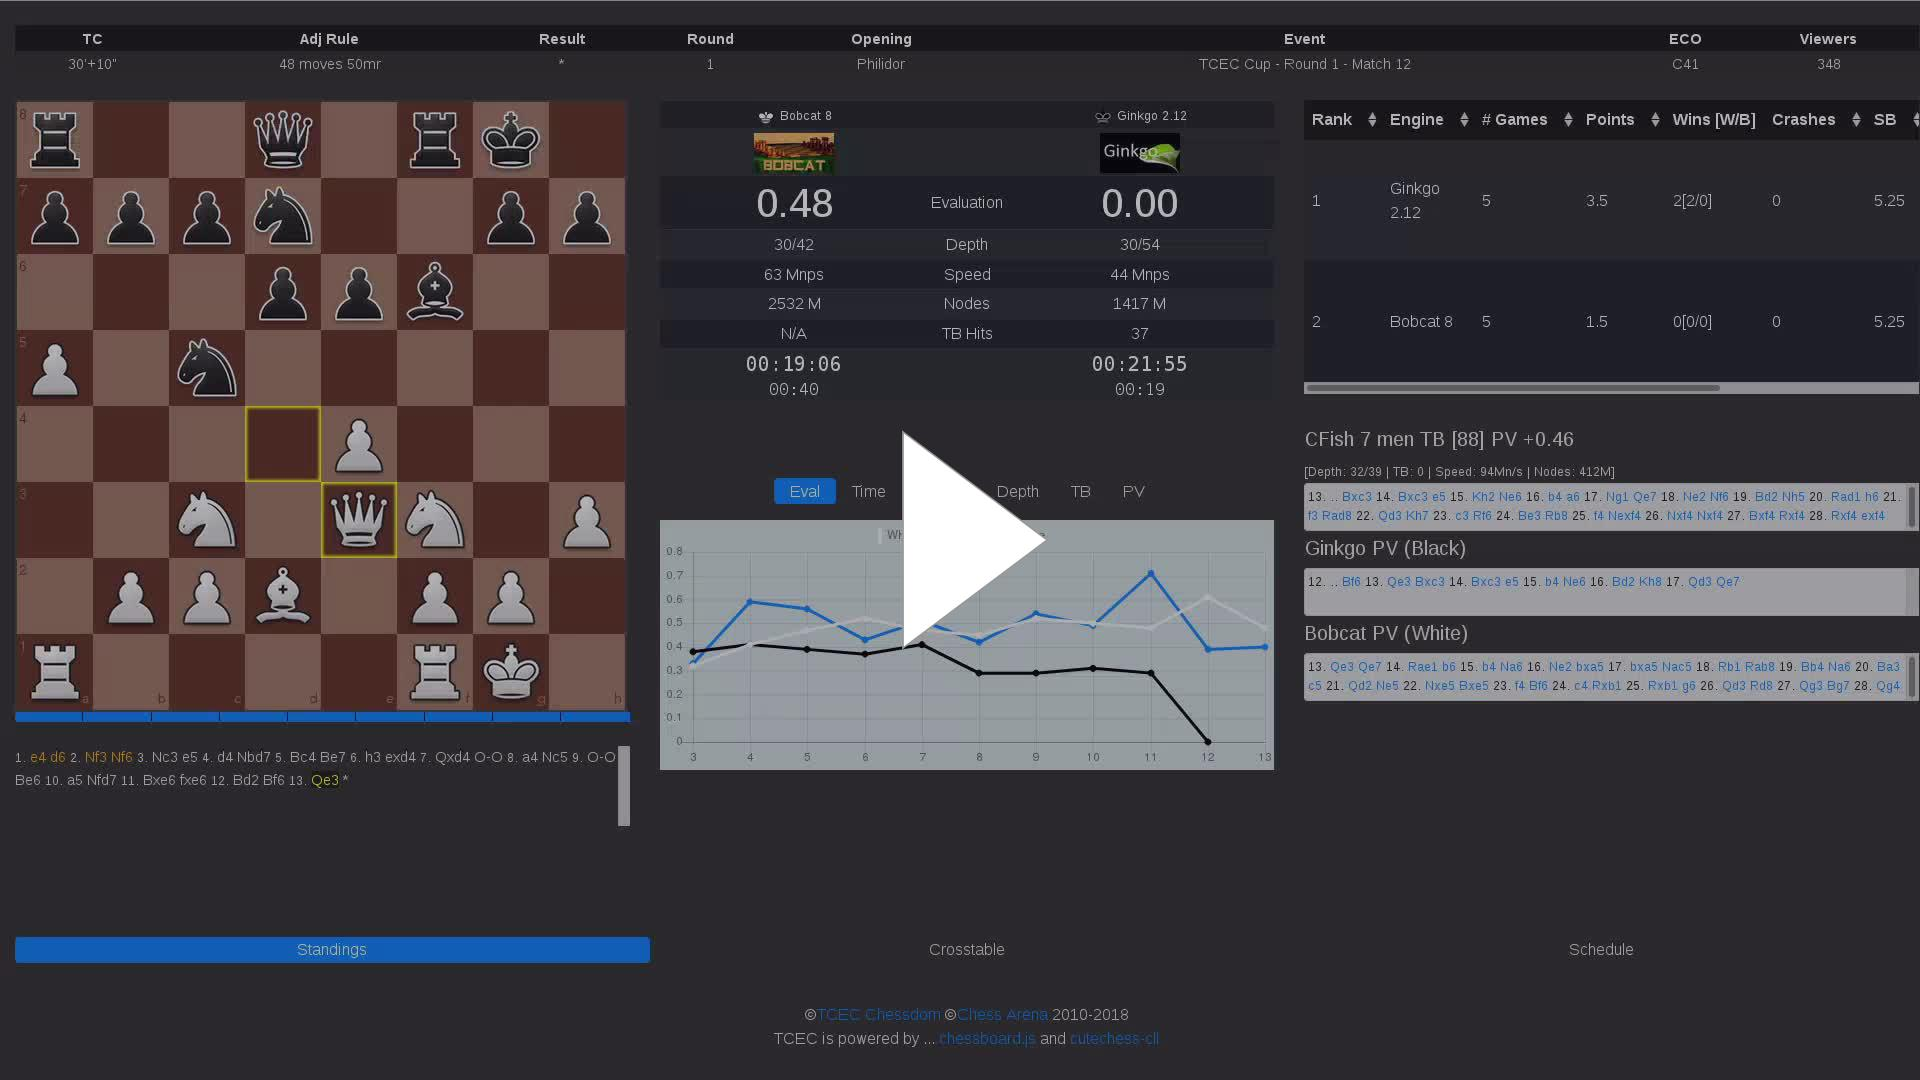 TCEC_Chess_TV - TCEC Season 13 - TCEC Cup 2018 round 1 (16th